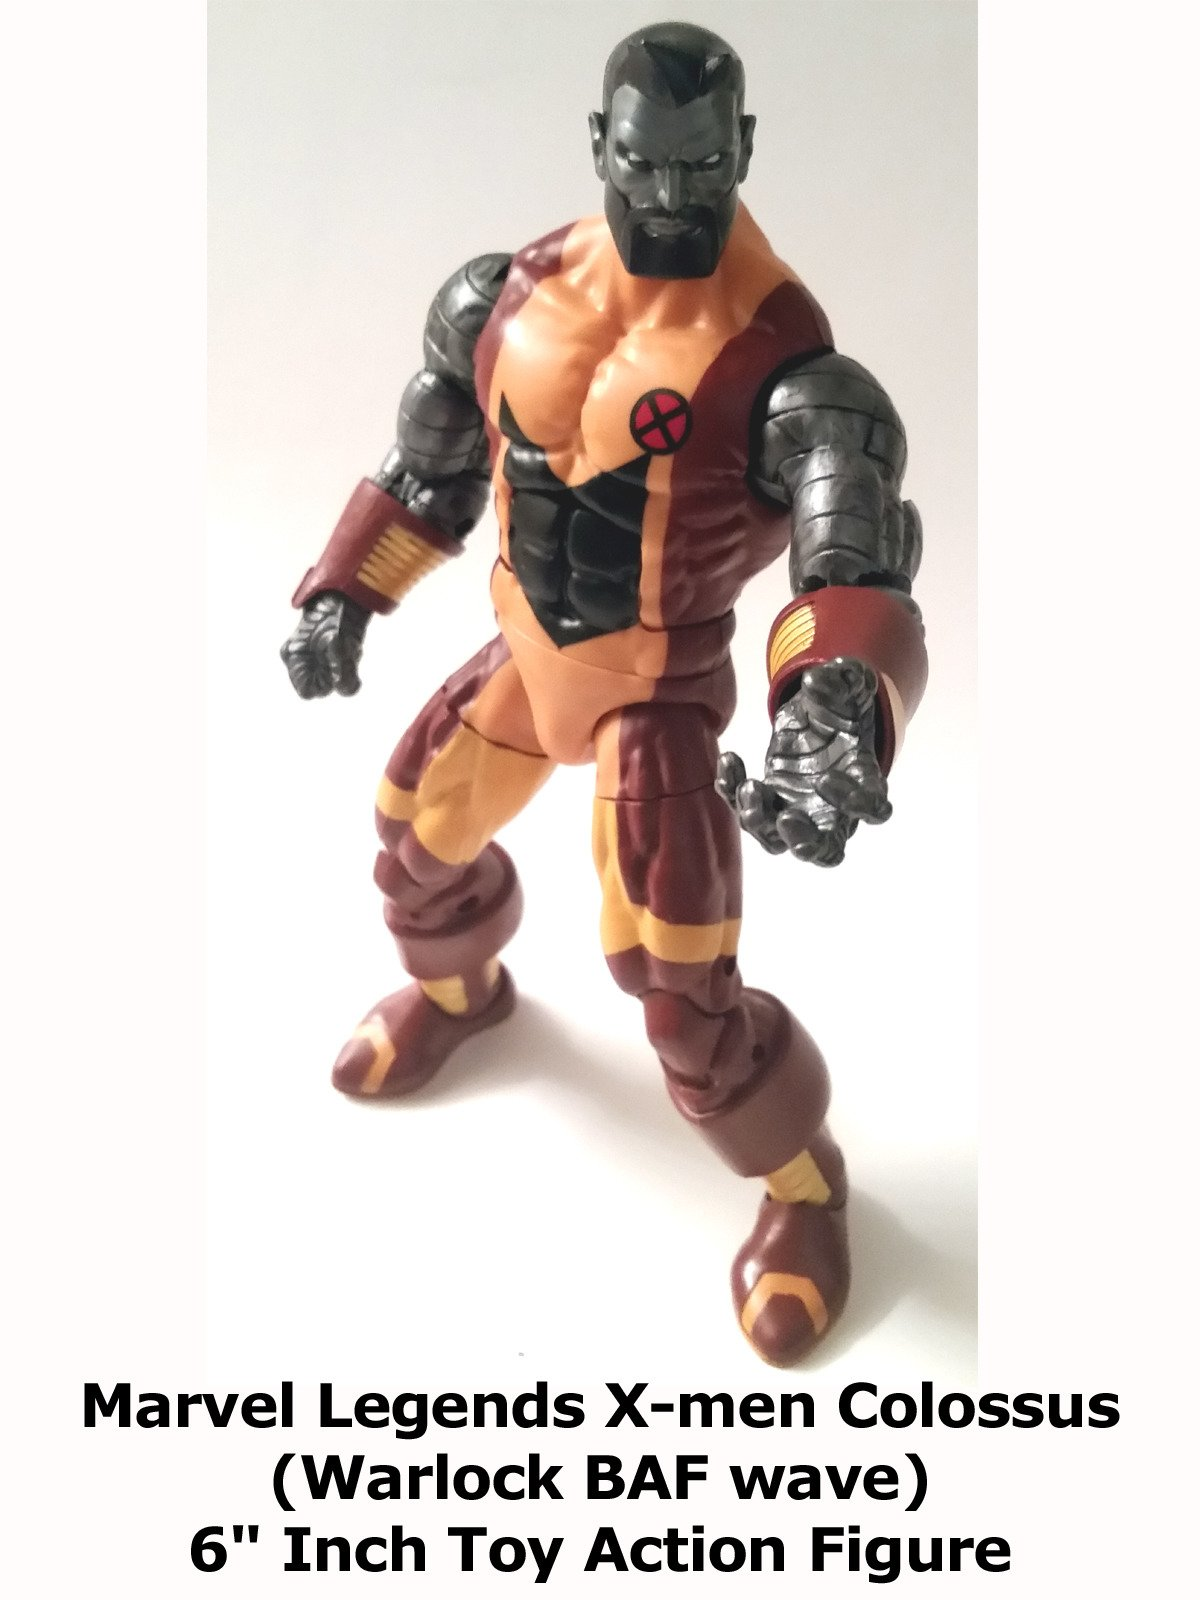 "Review: Marvel Legends X-men Colossus (Warlock BAF wave) 6"" Inch Toy Action Figure"